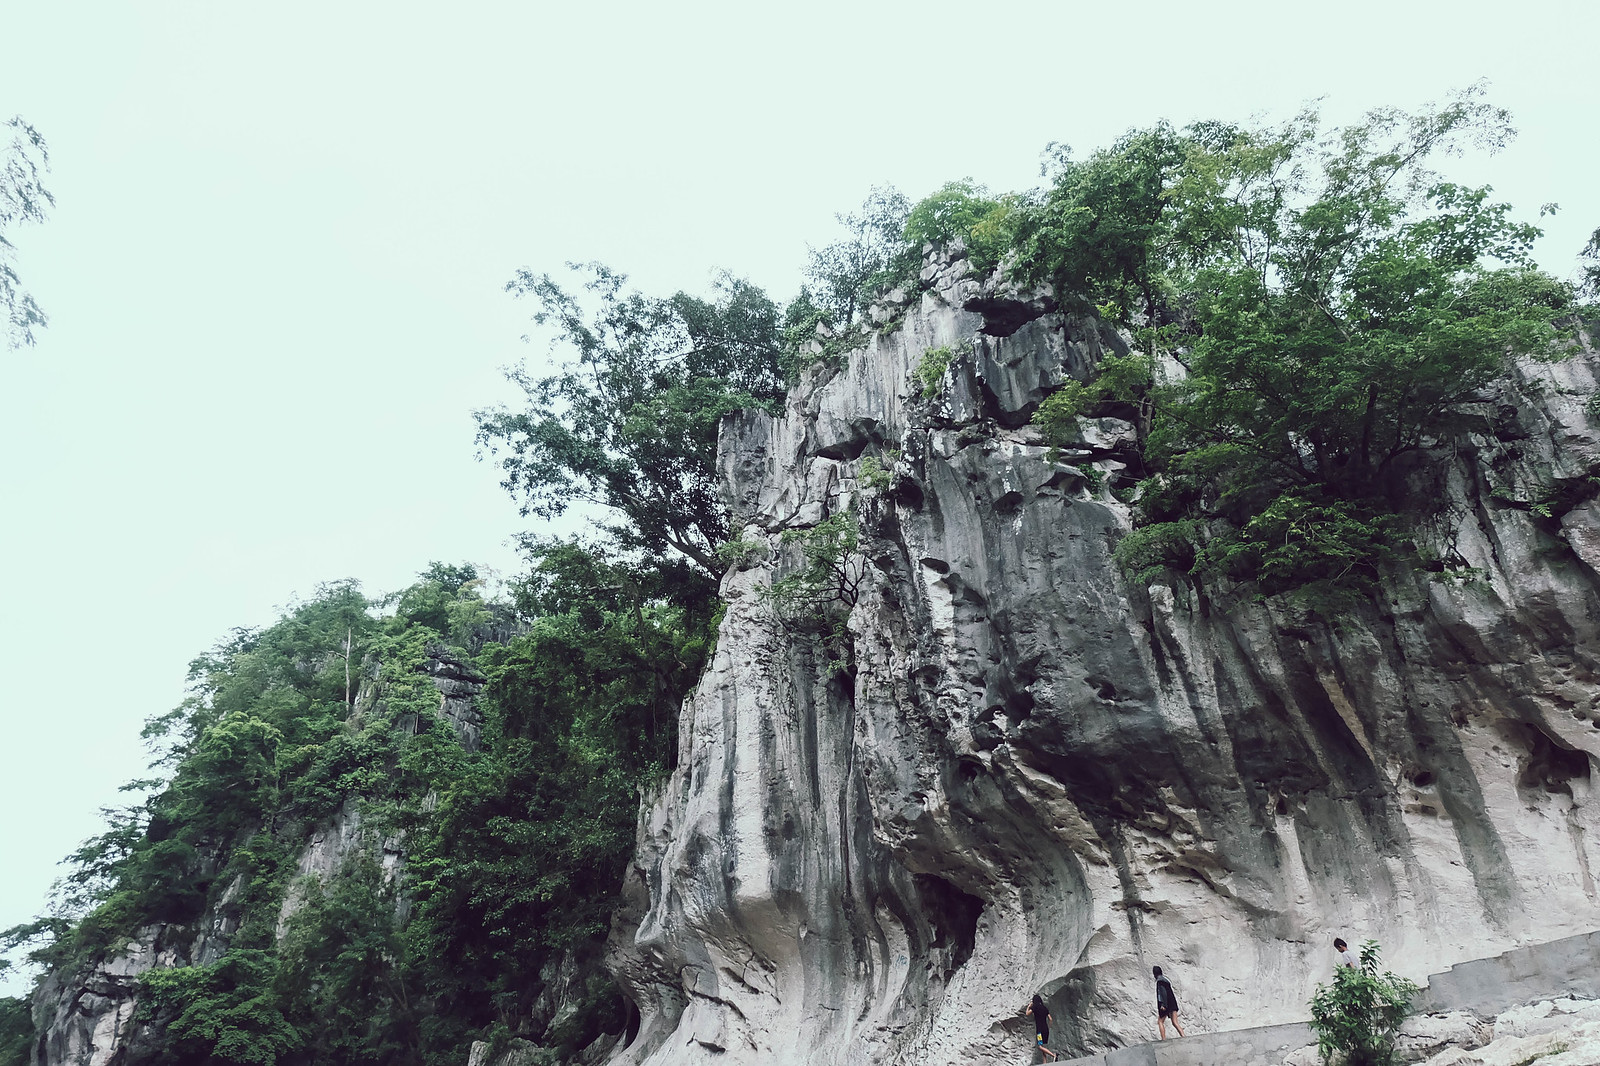 limestone formation at minalungao national park